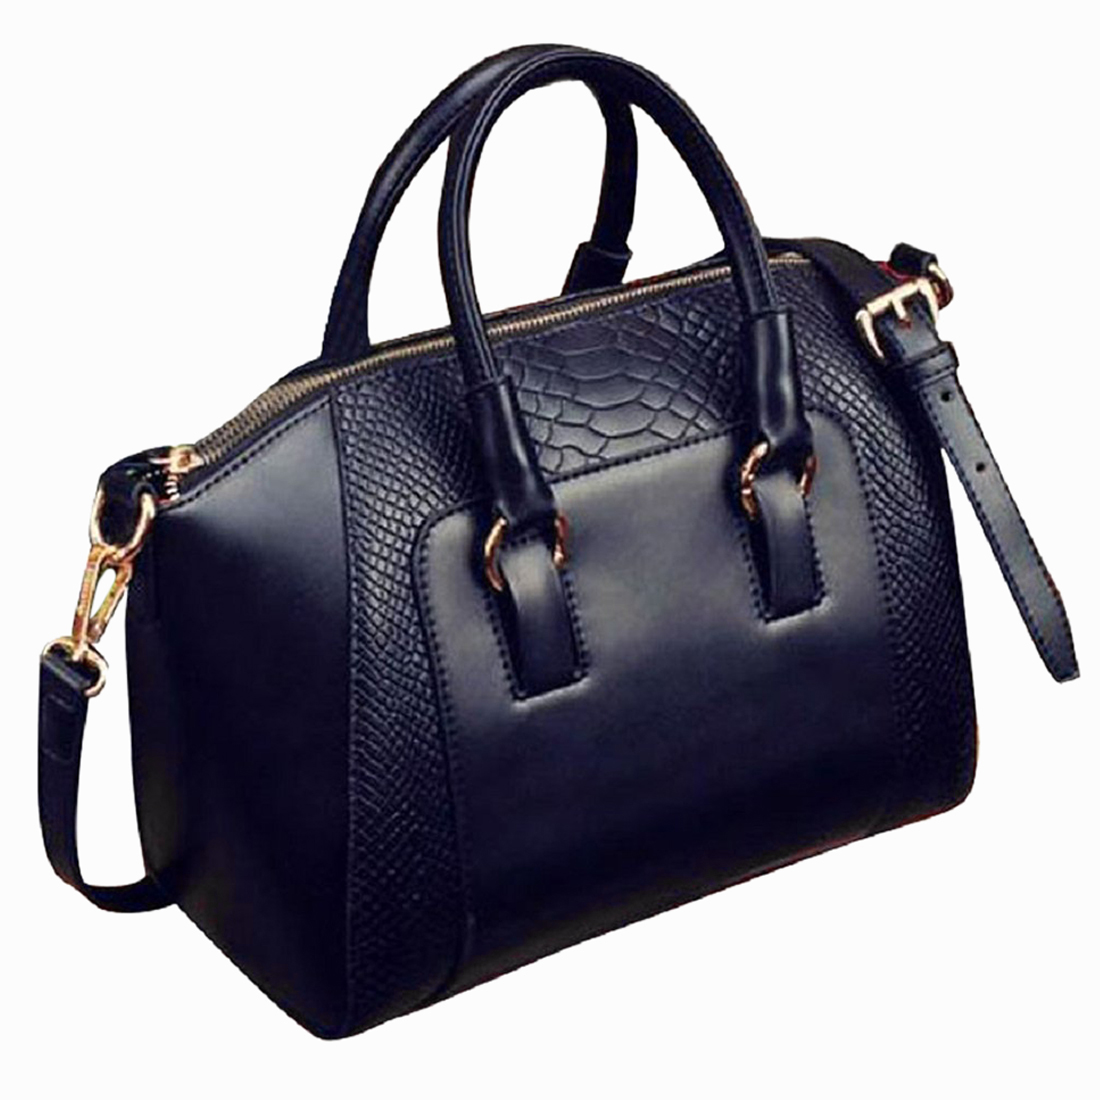 Hot Fashion Women s Shoulder Bag in imitation leather Satchel Cross Body Tote Bag